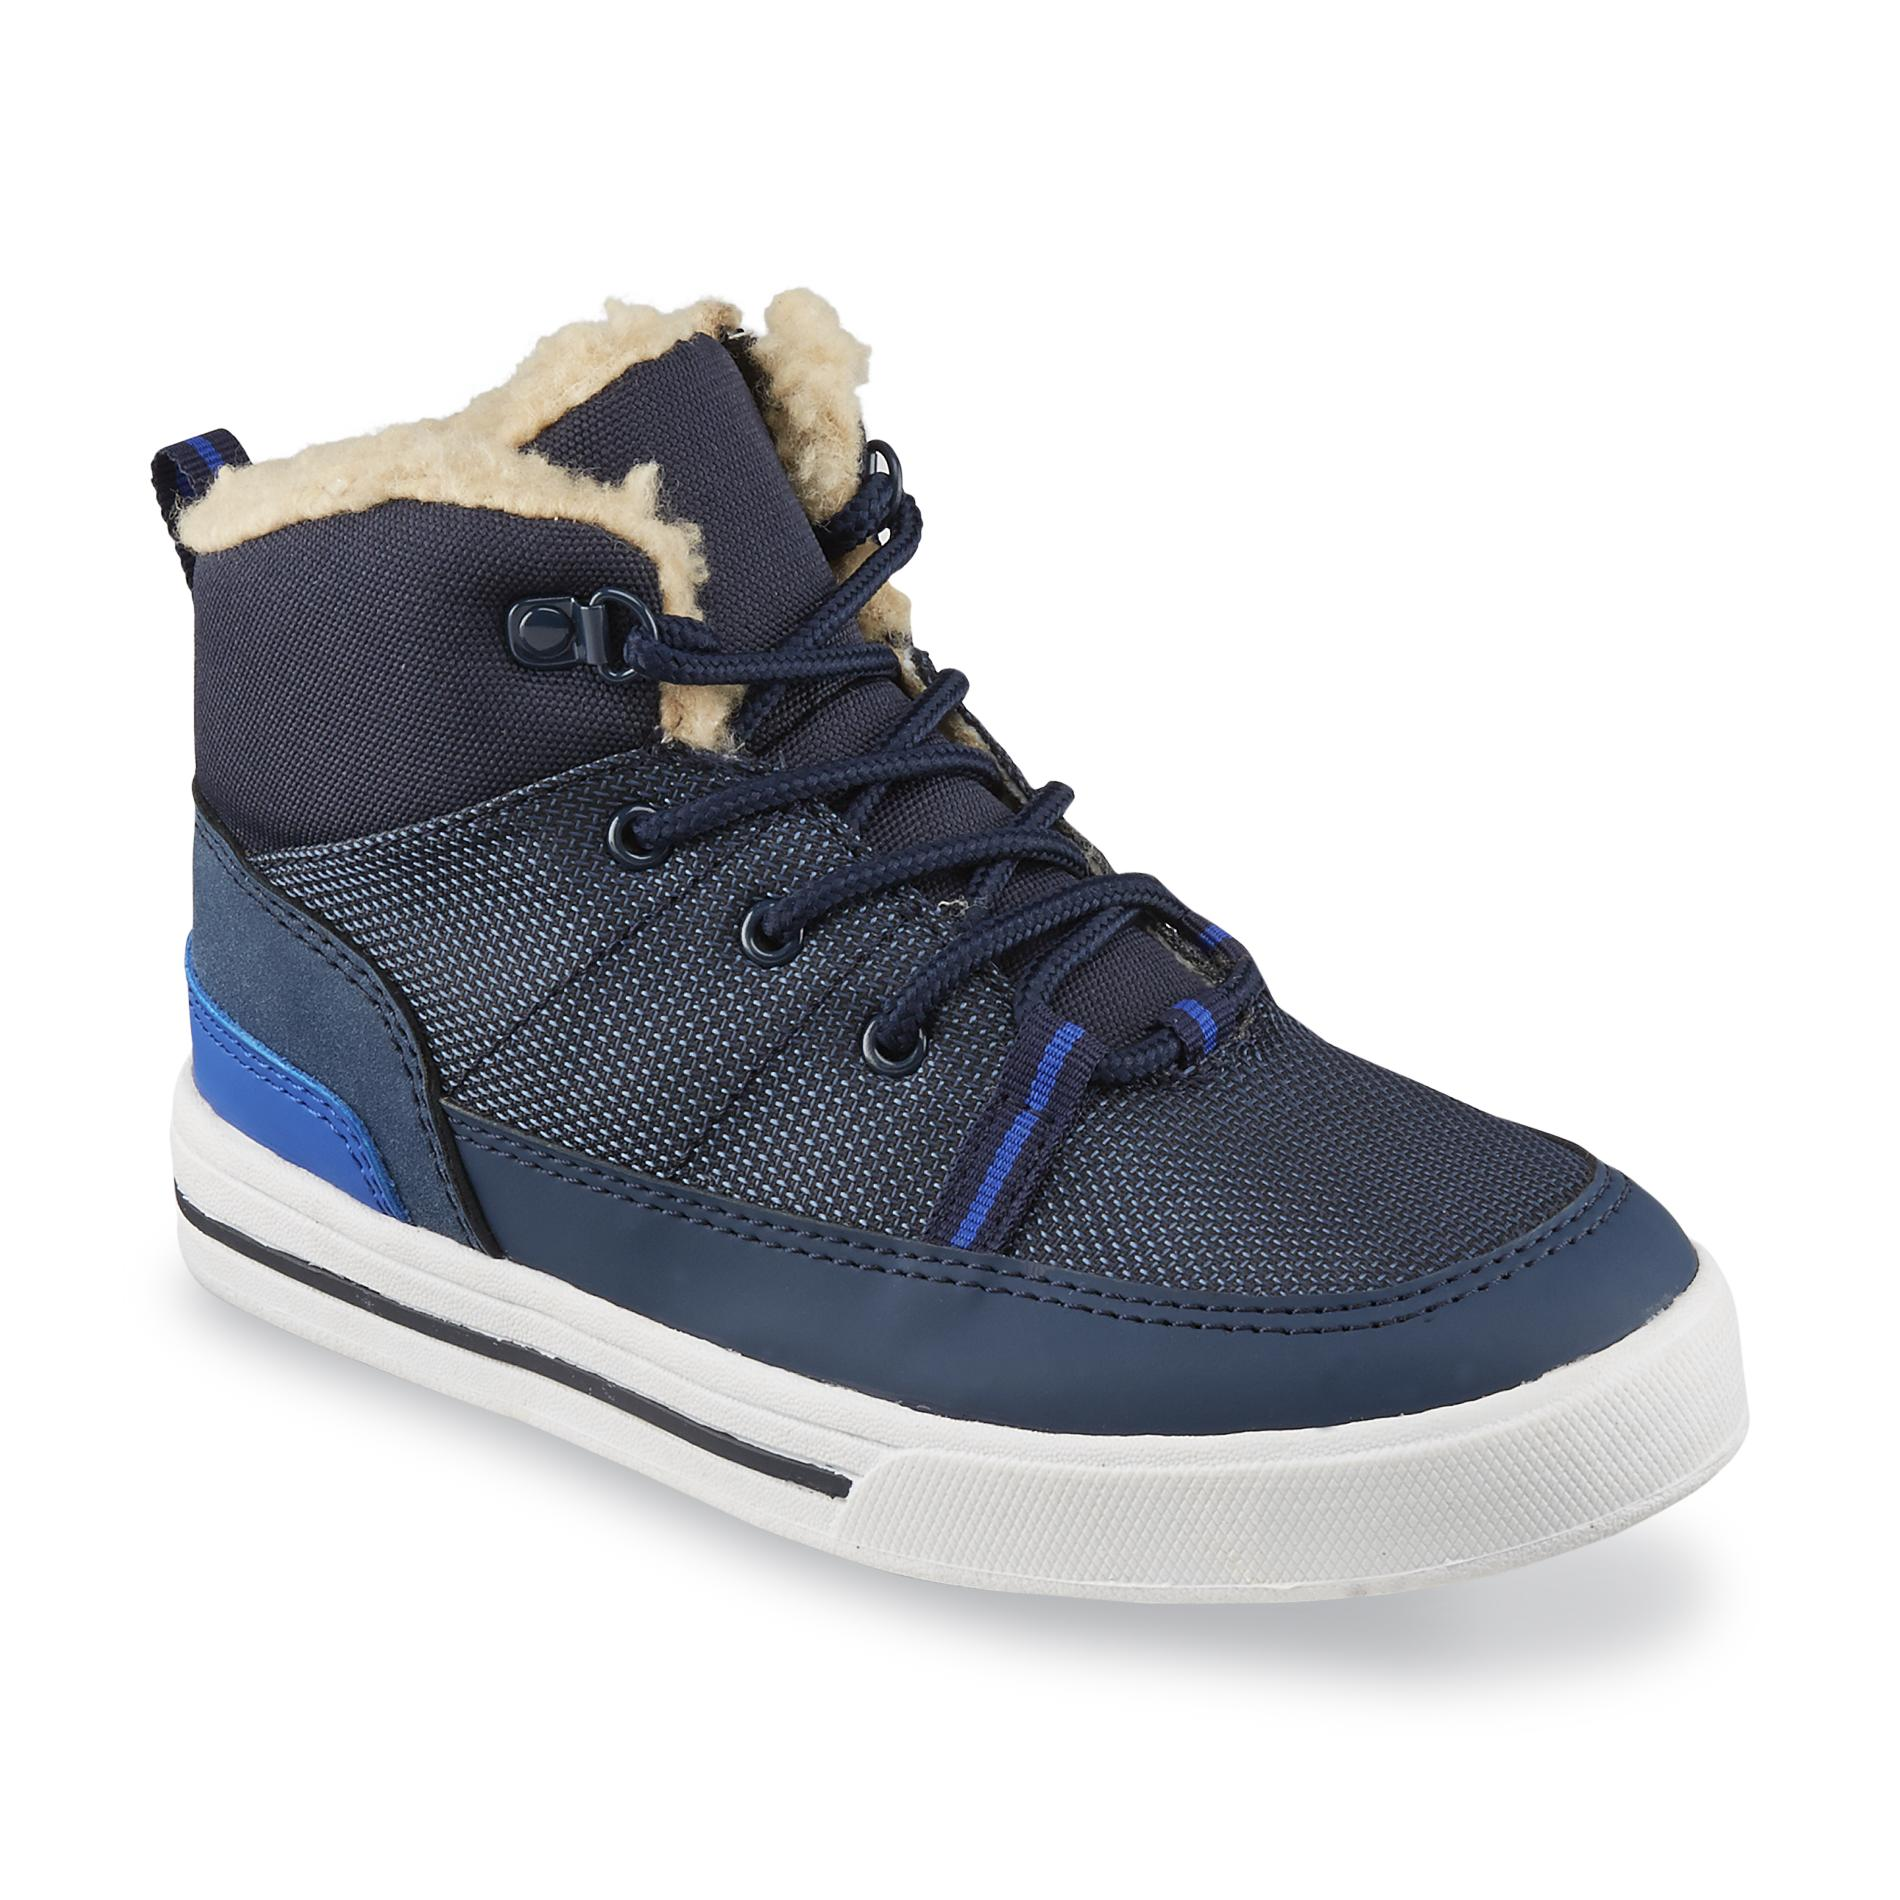 Route 66 Toddler/Youth Boy's Jack Navy High-Top Shoe